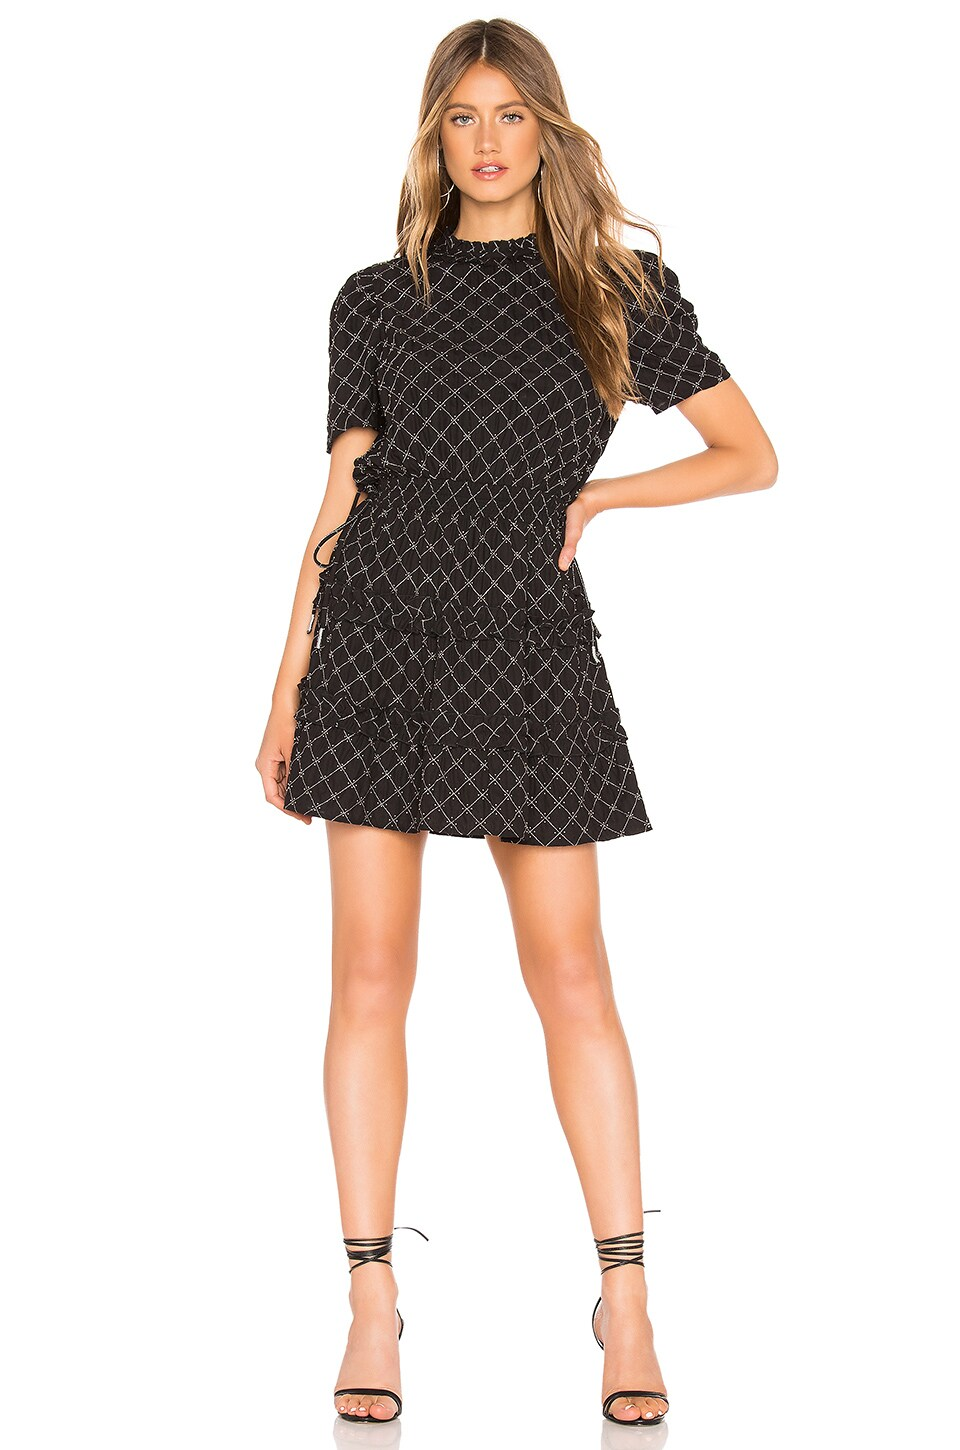 Tularosa Fiona Dress in Black